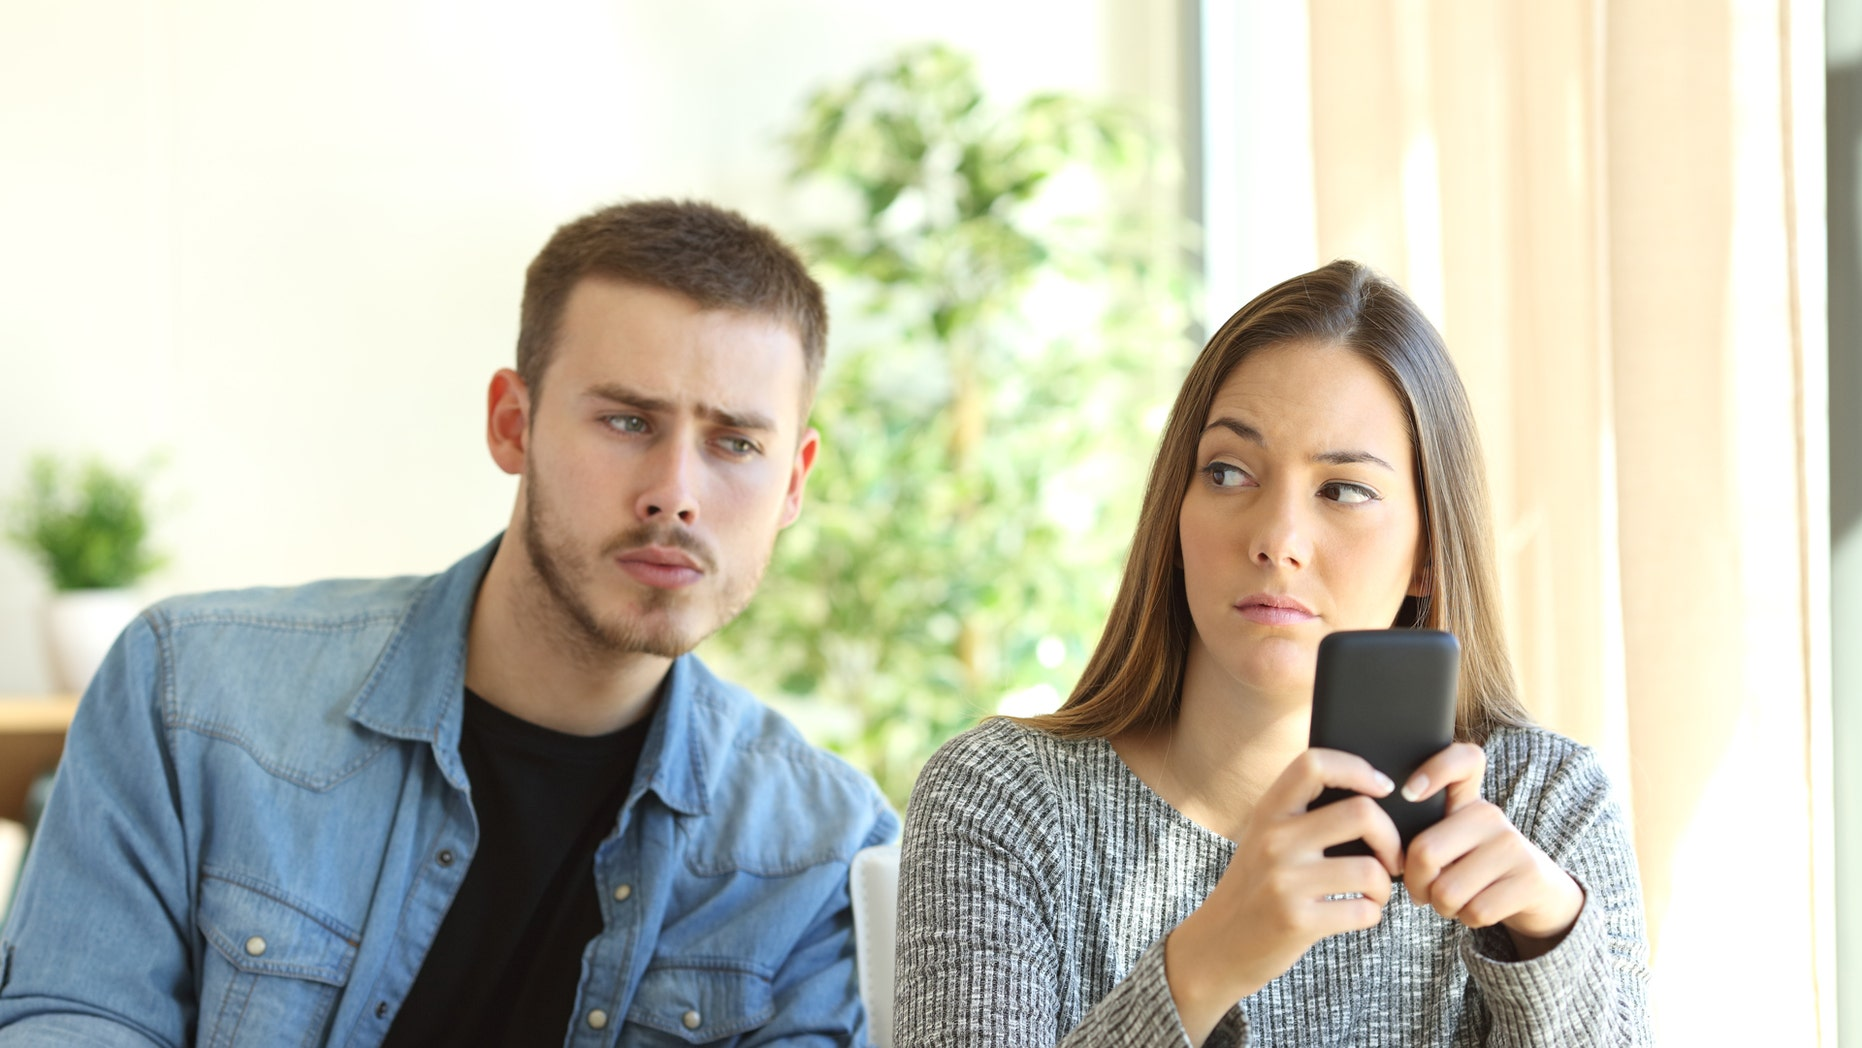 Jealous boyfriend spying his girlfriend watching her phone while she is looking him upset  (Credit: AntonioGuillem, iStock)